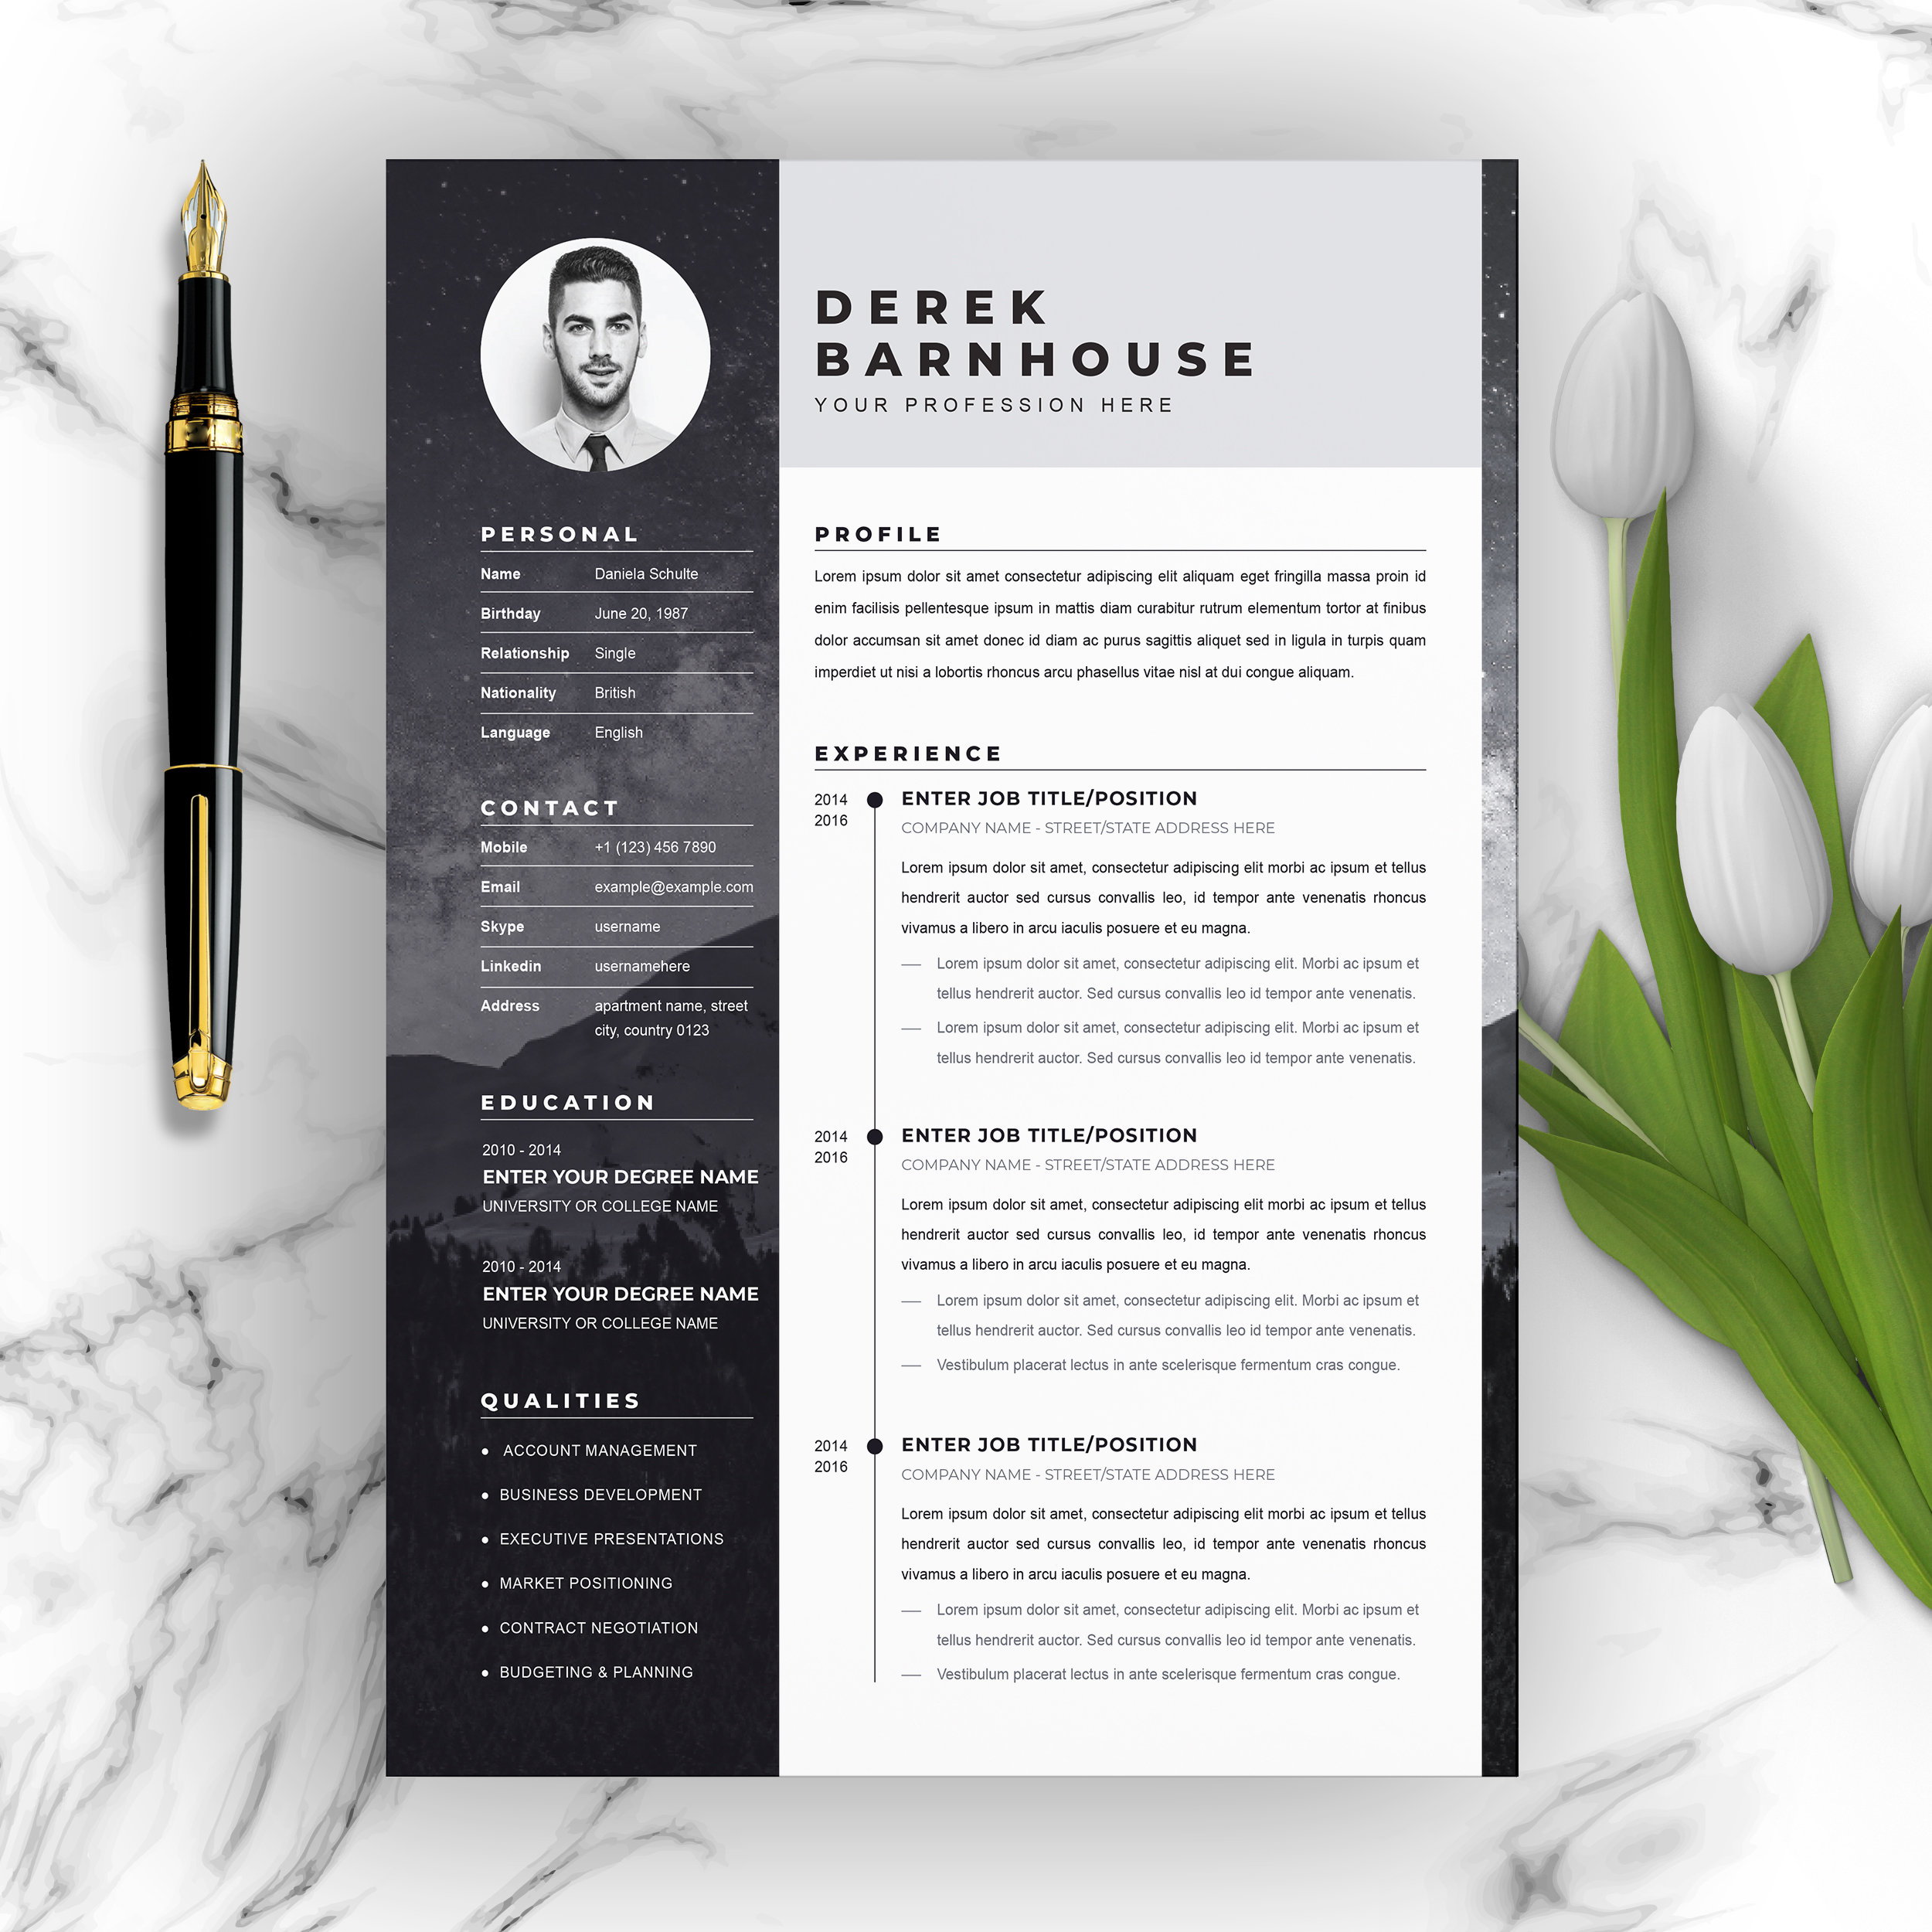 Modern Resume Template Ms Word Free Download لم يسبق له مثيل الصور